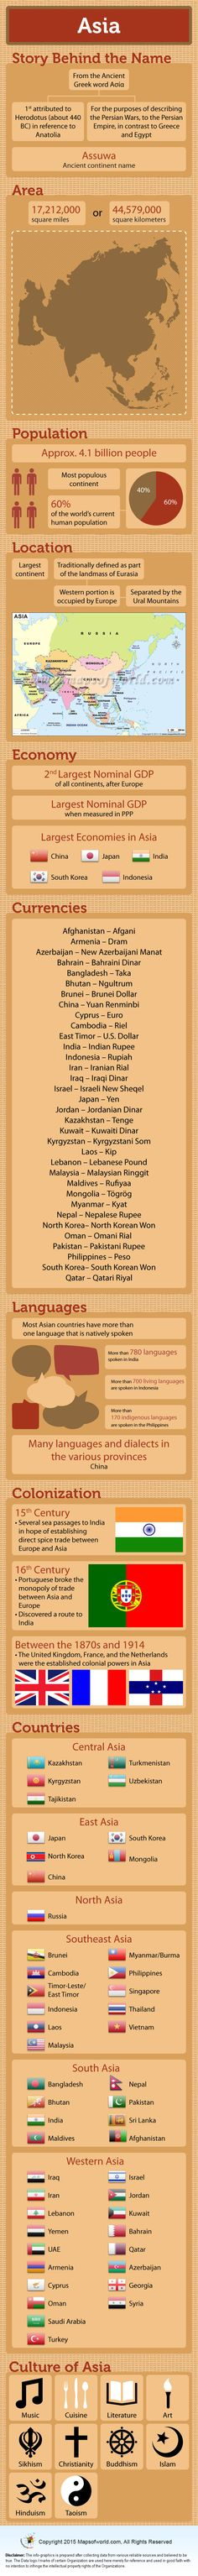 An insightful #Infographic based on Asia #Facts!